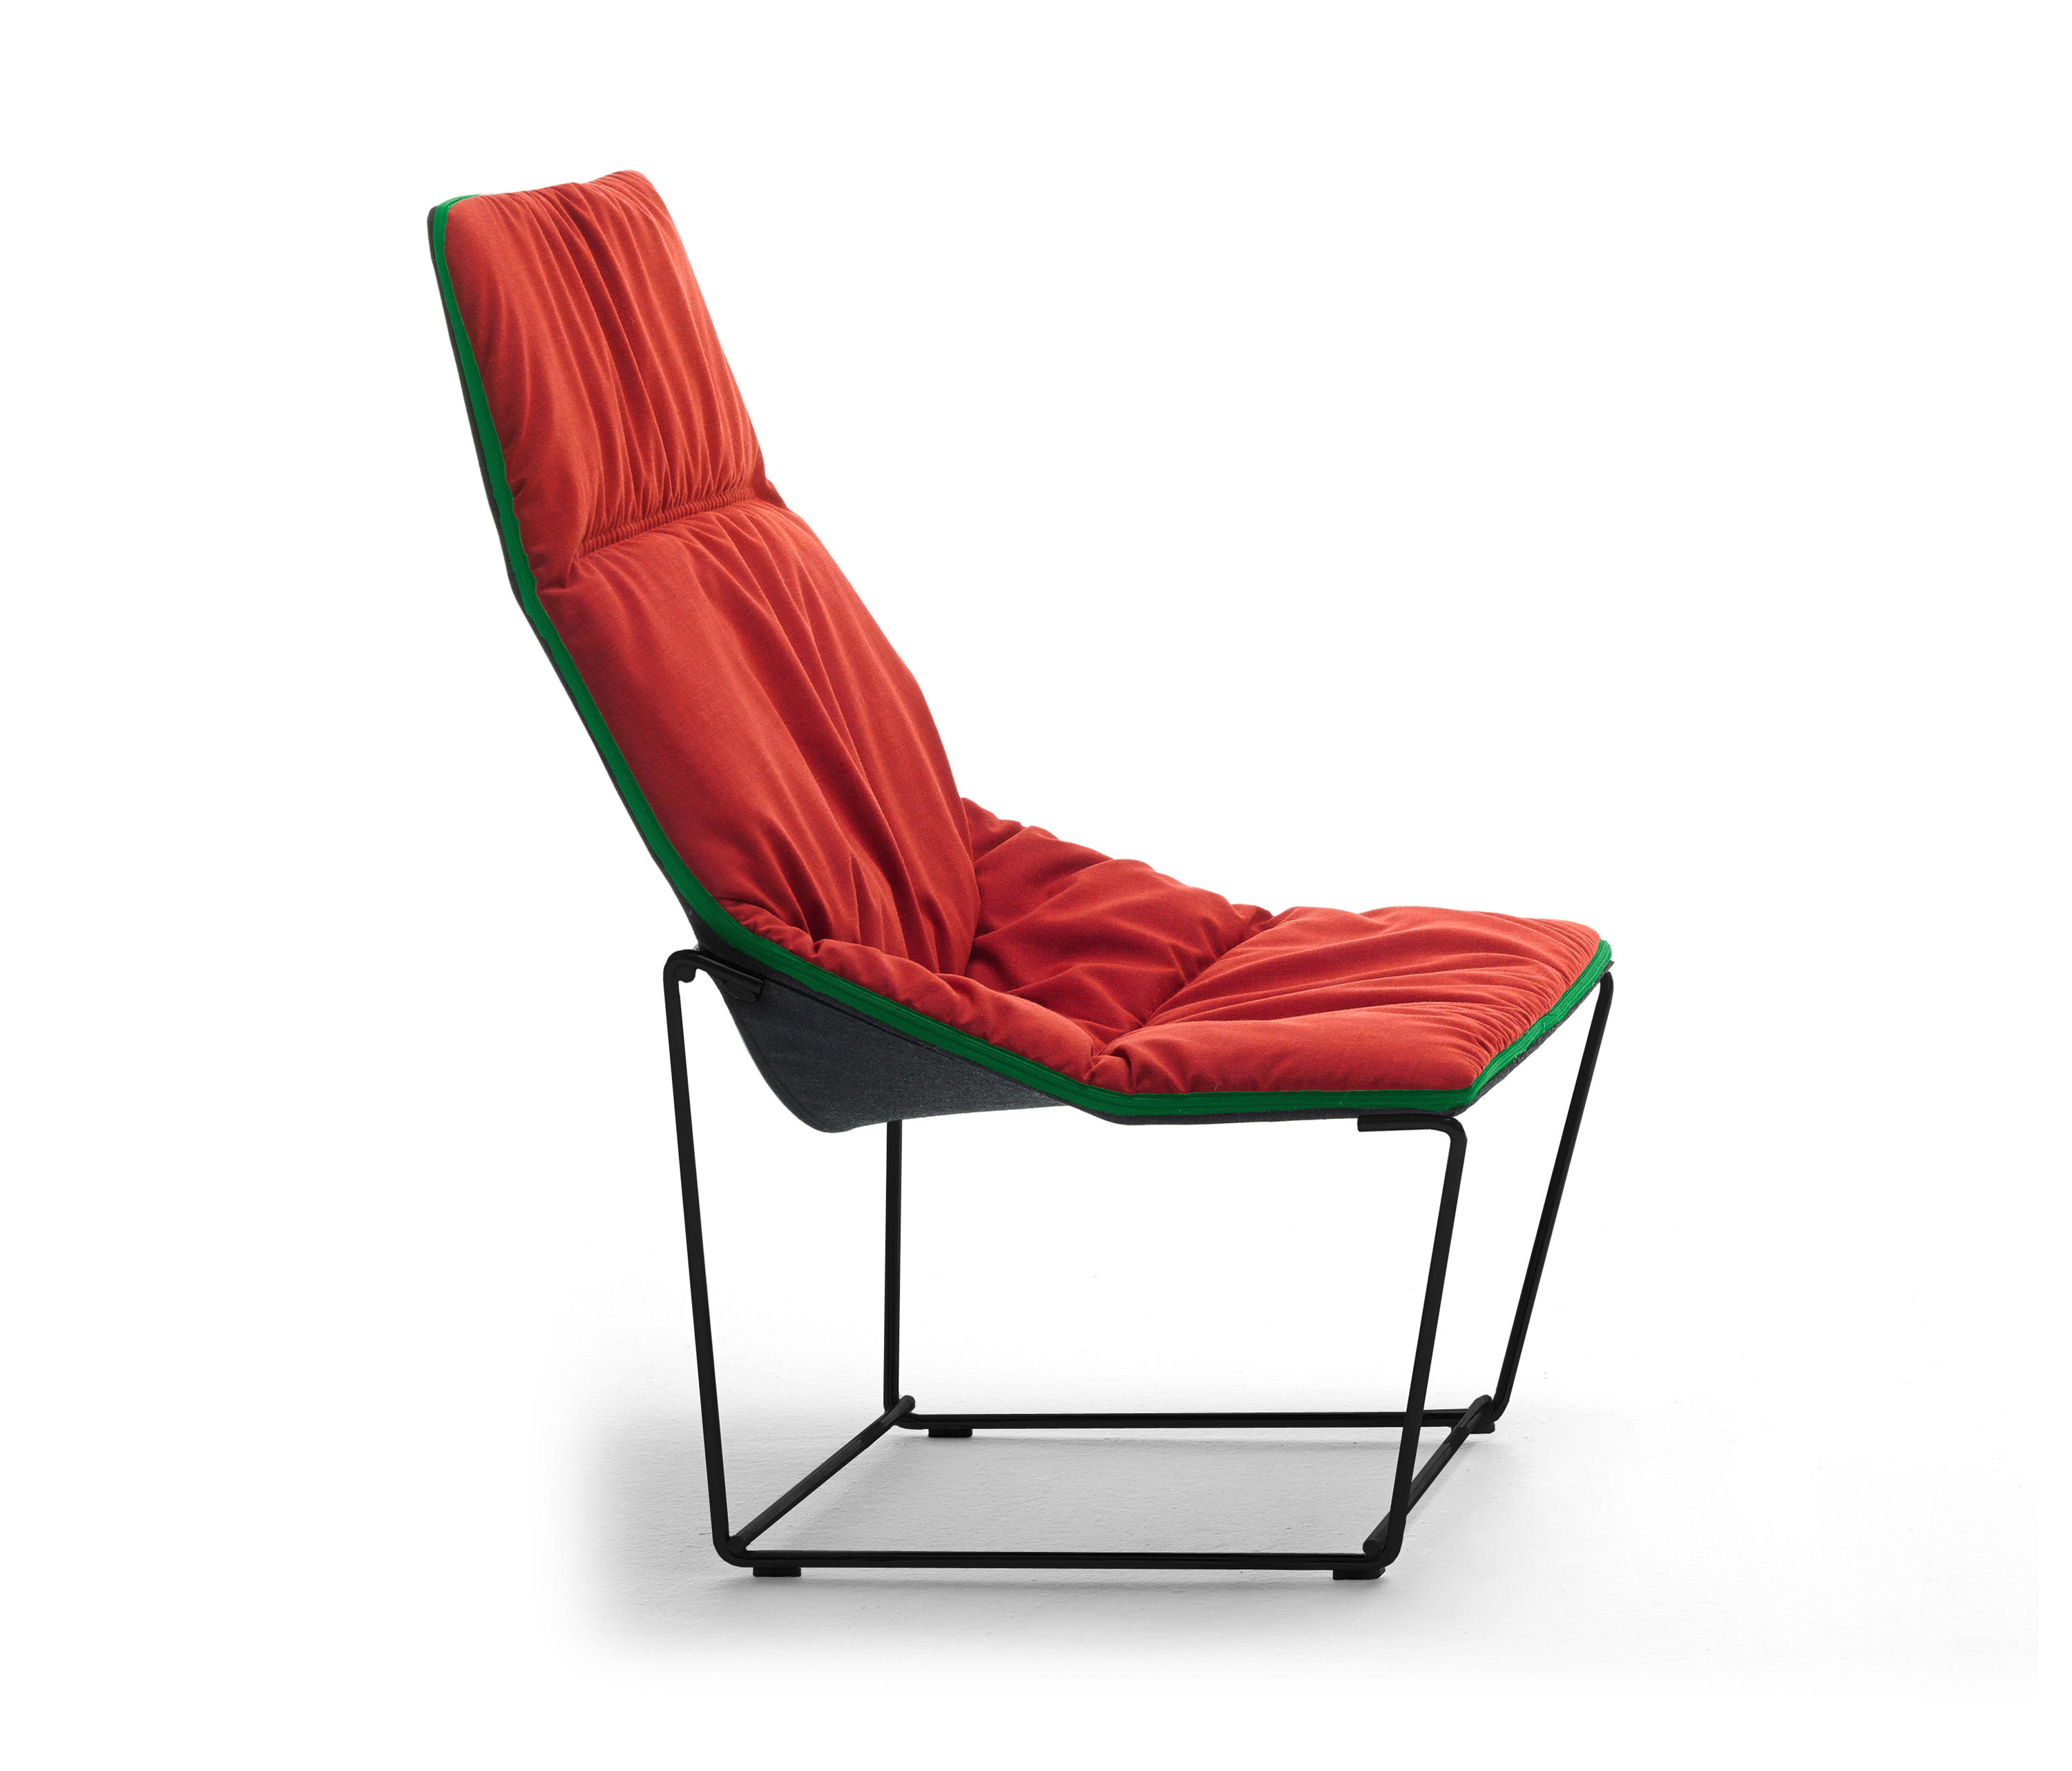 ACE - Armchairs from viccarbe | Architonic